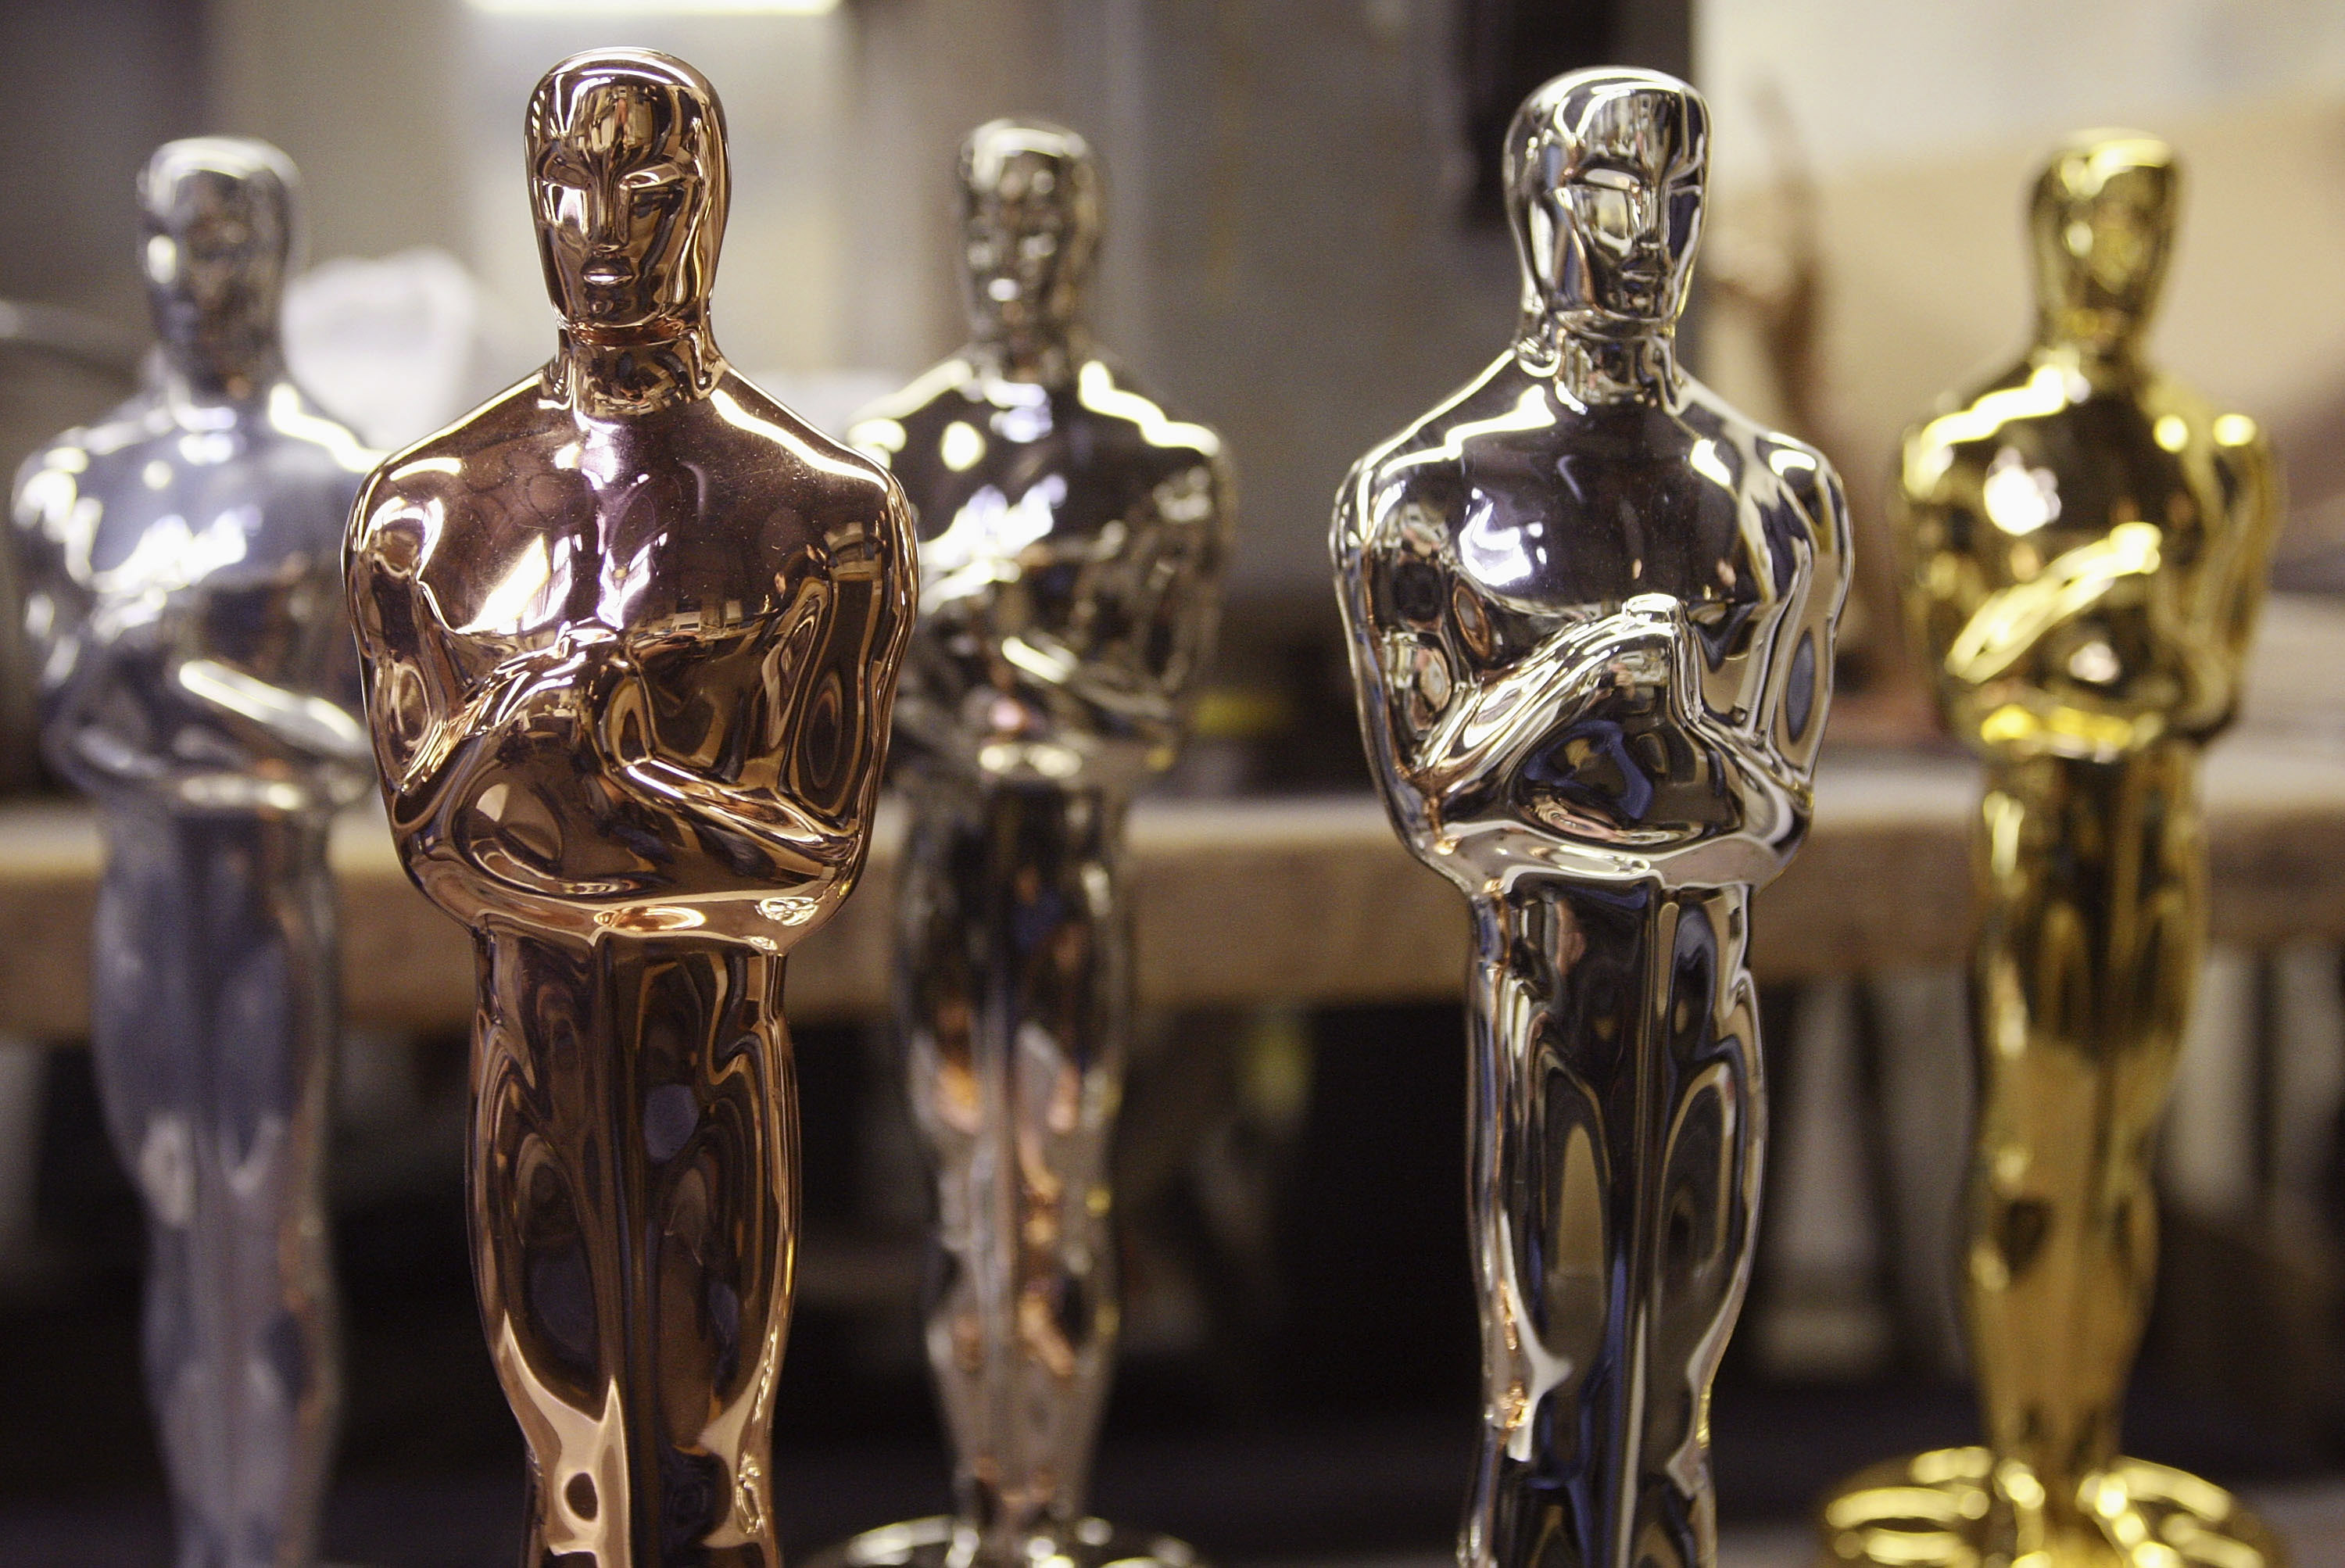 Ocsar Statues Are Made Ahead Of This Year's Academy Awards